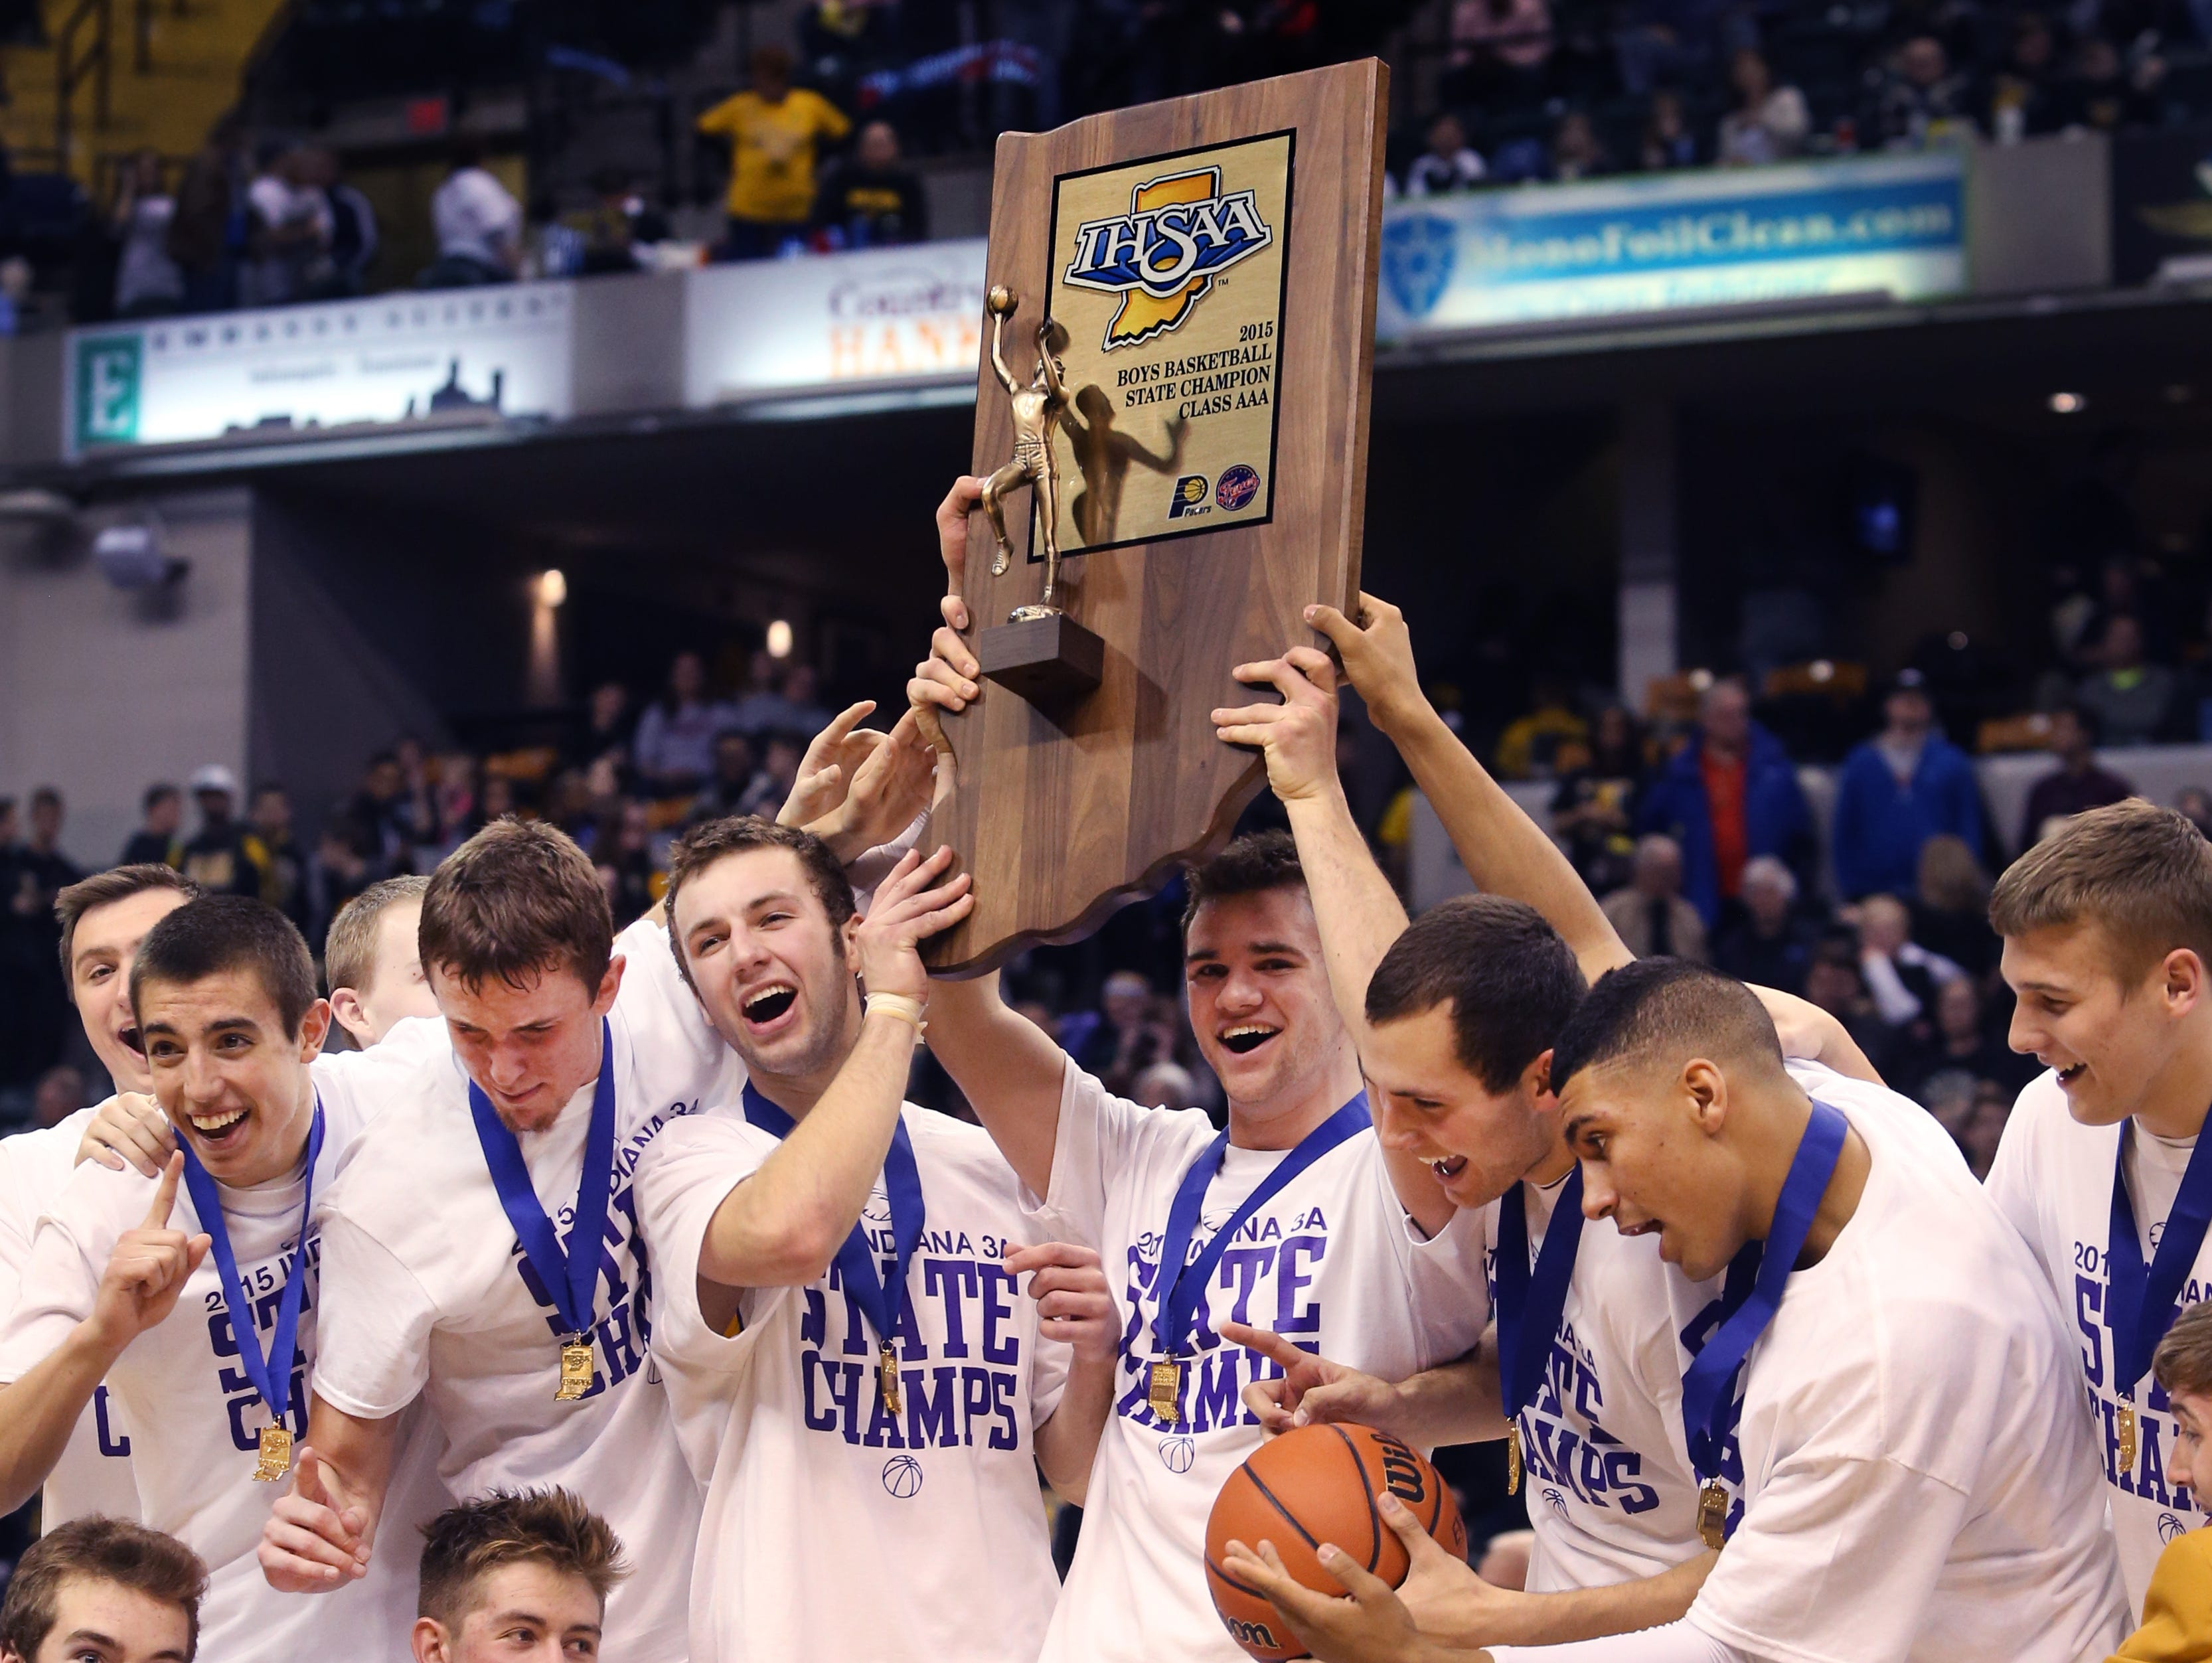 Guerin Catholic players celebrate after defeating Griffith 62-56 in the state finals to win the IHSAA Class 3A Boys State Basketball Championship at Bankers Life Fieldhouse March 28, 2015.